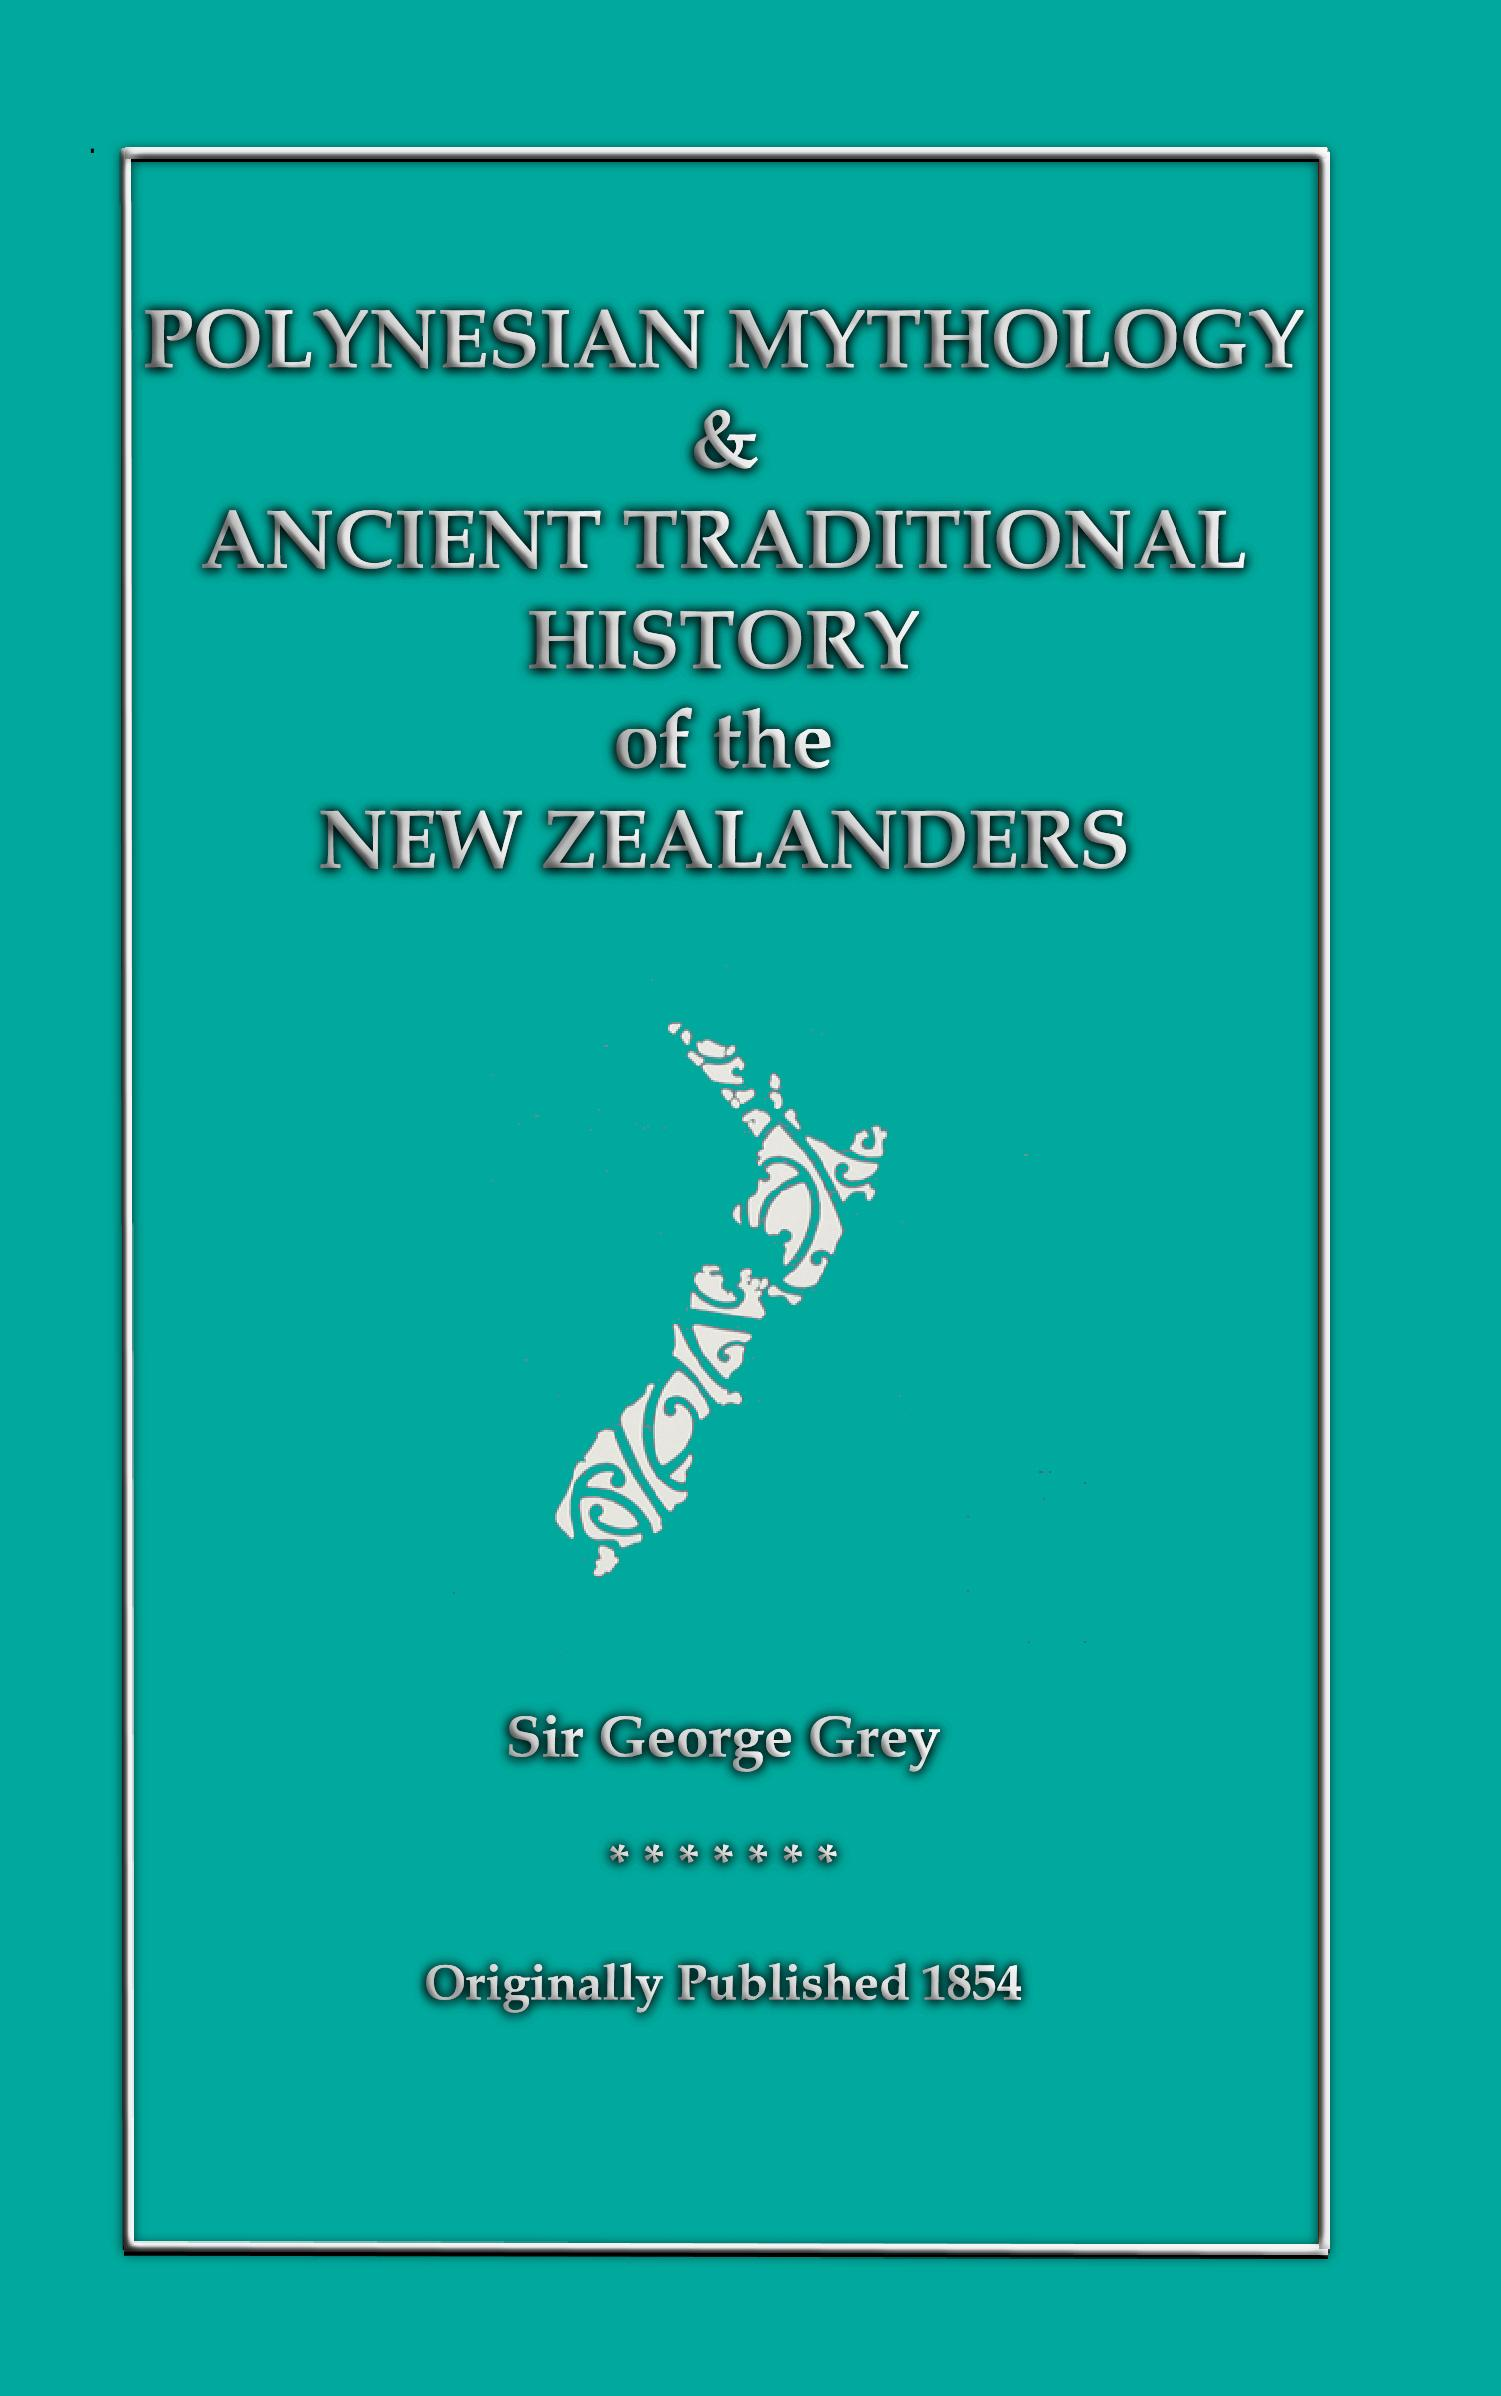 POLYNESIAN MYTHOLOGY ANCIENT TRADITIONAL HISTORY OF THE NEW ZEALANDERS EB2370003038101